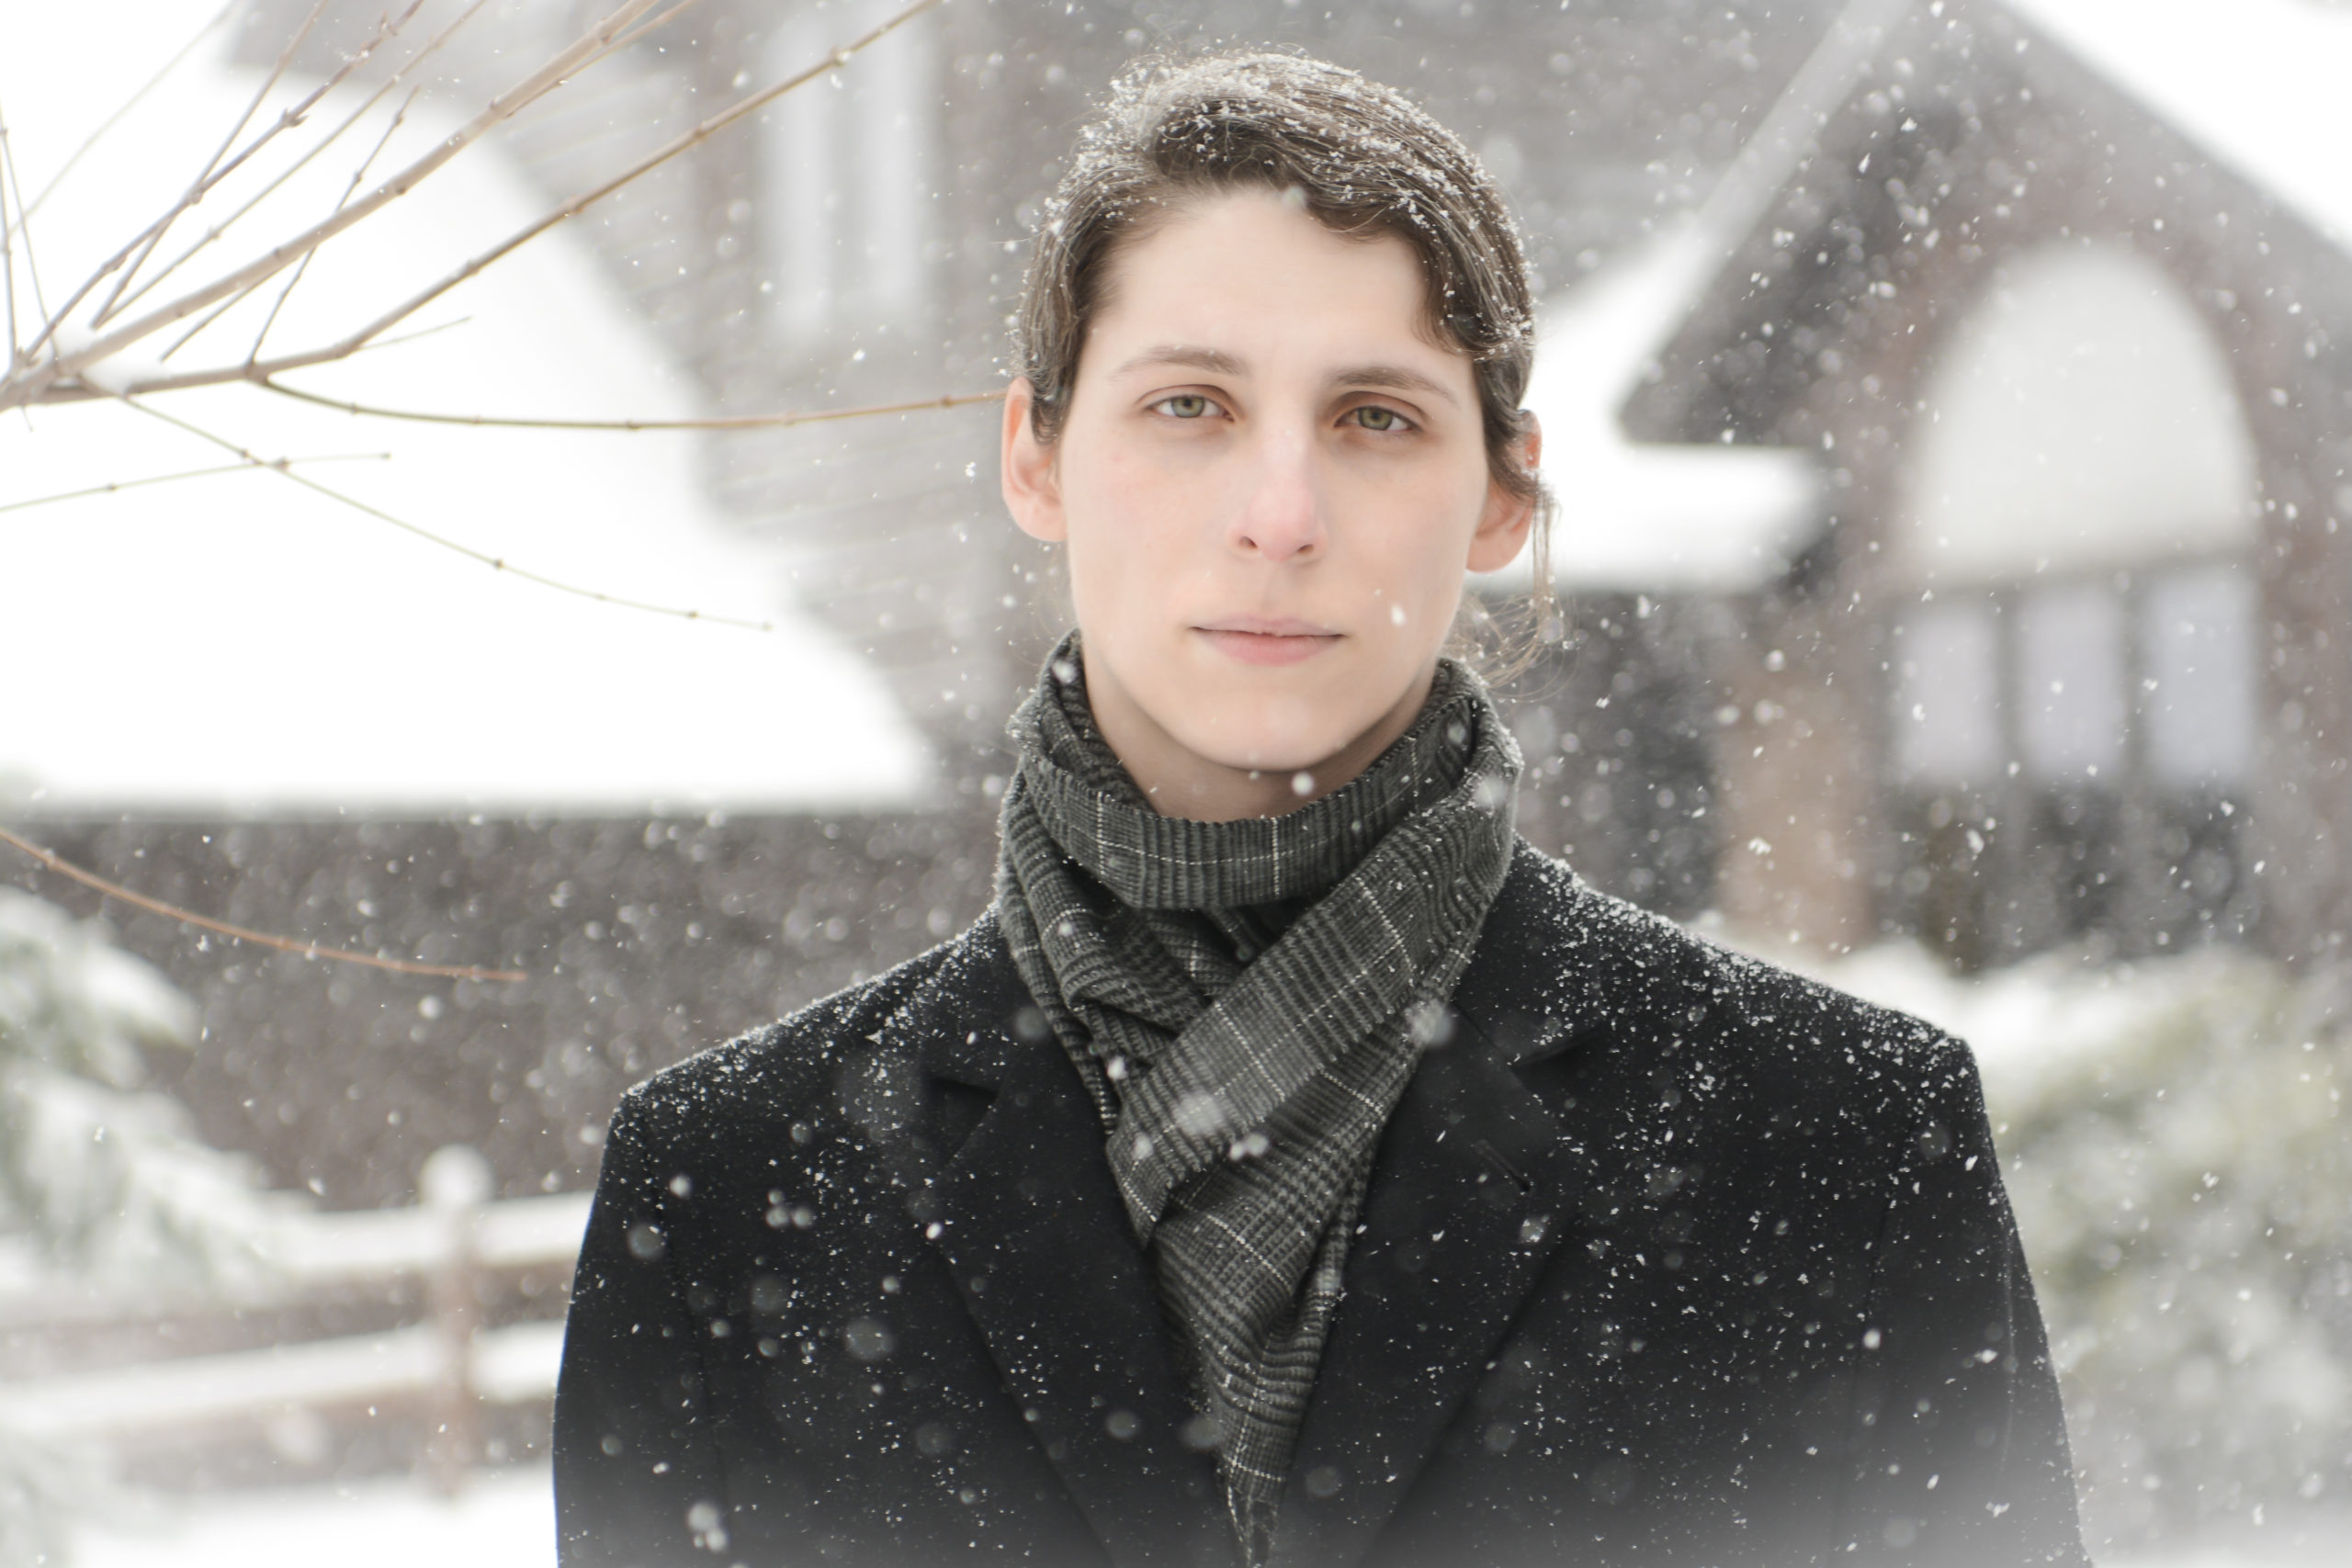 Transgender organist and composer Dr. Kris Rizzotto on a snowy Easter Sunday in Minnesota